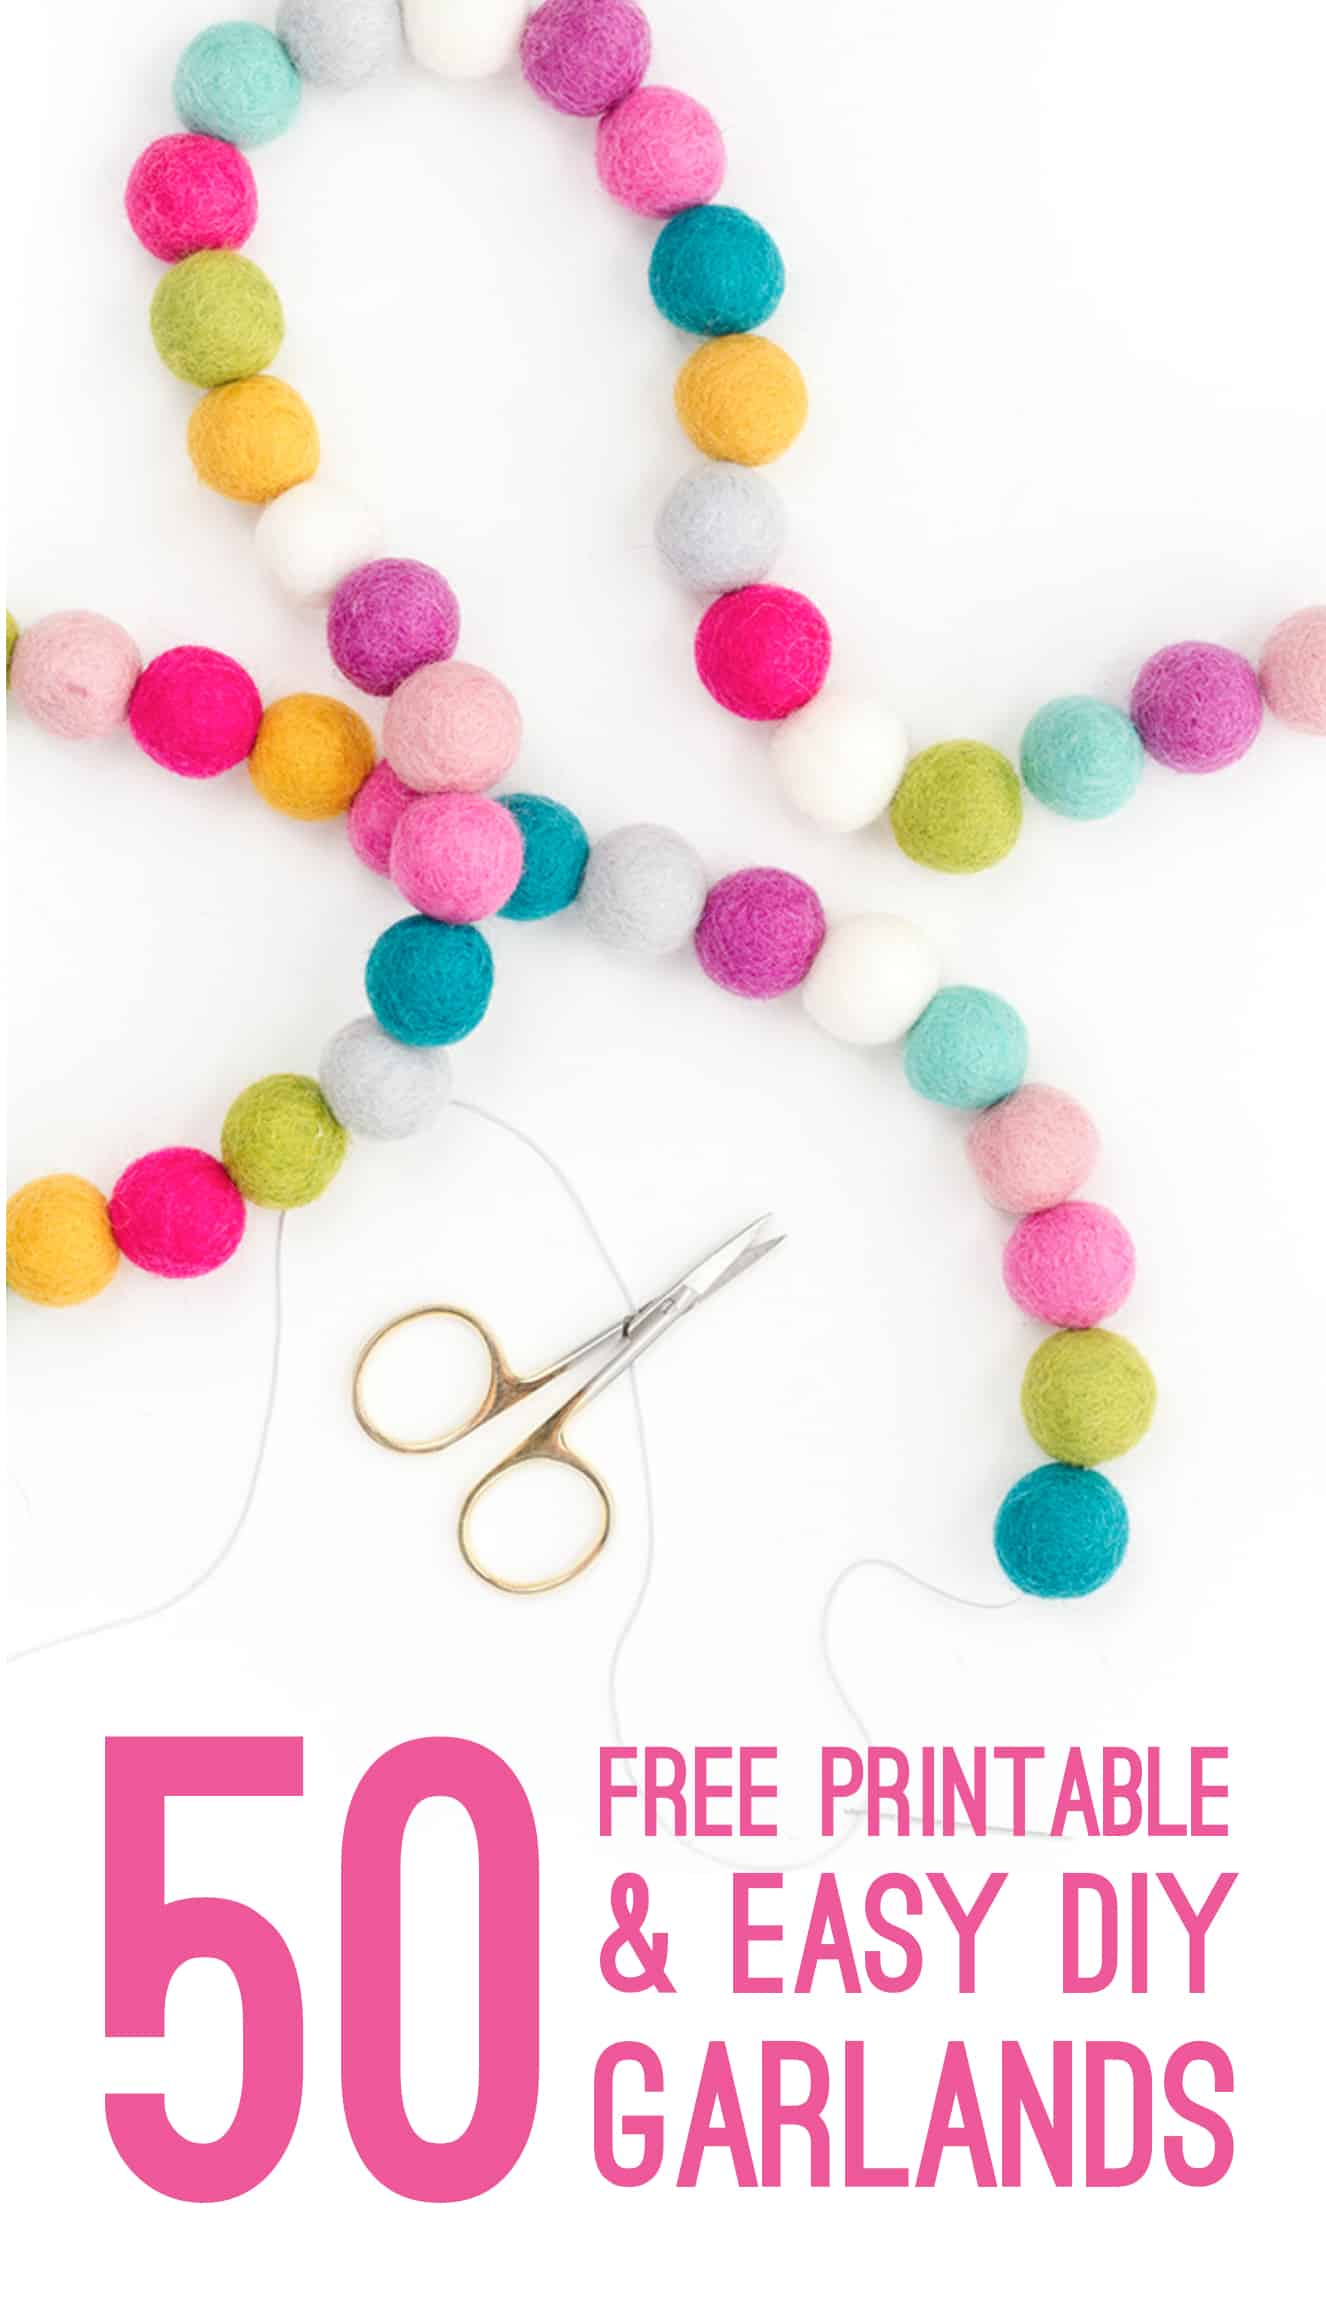 graphic relating to Free Printable Banners identify 50 Totally free PRINTABLE GARLANDS AND Do-it-yourself BANNERS Your self Need to have FOR YOUR